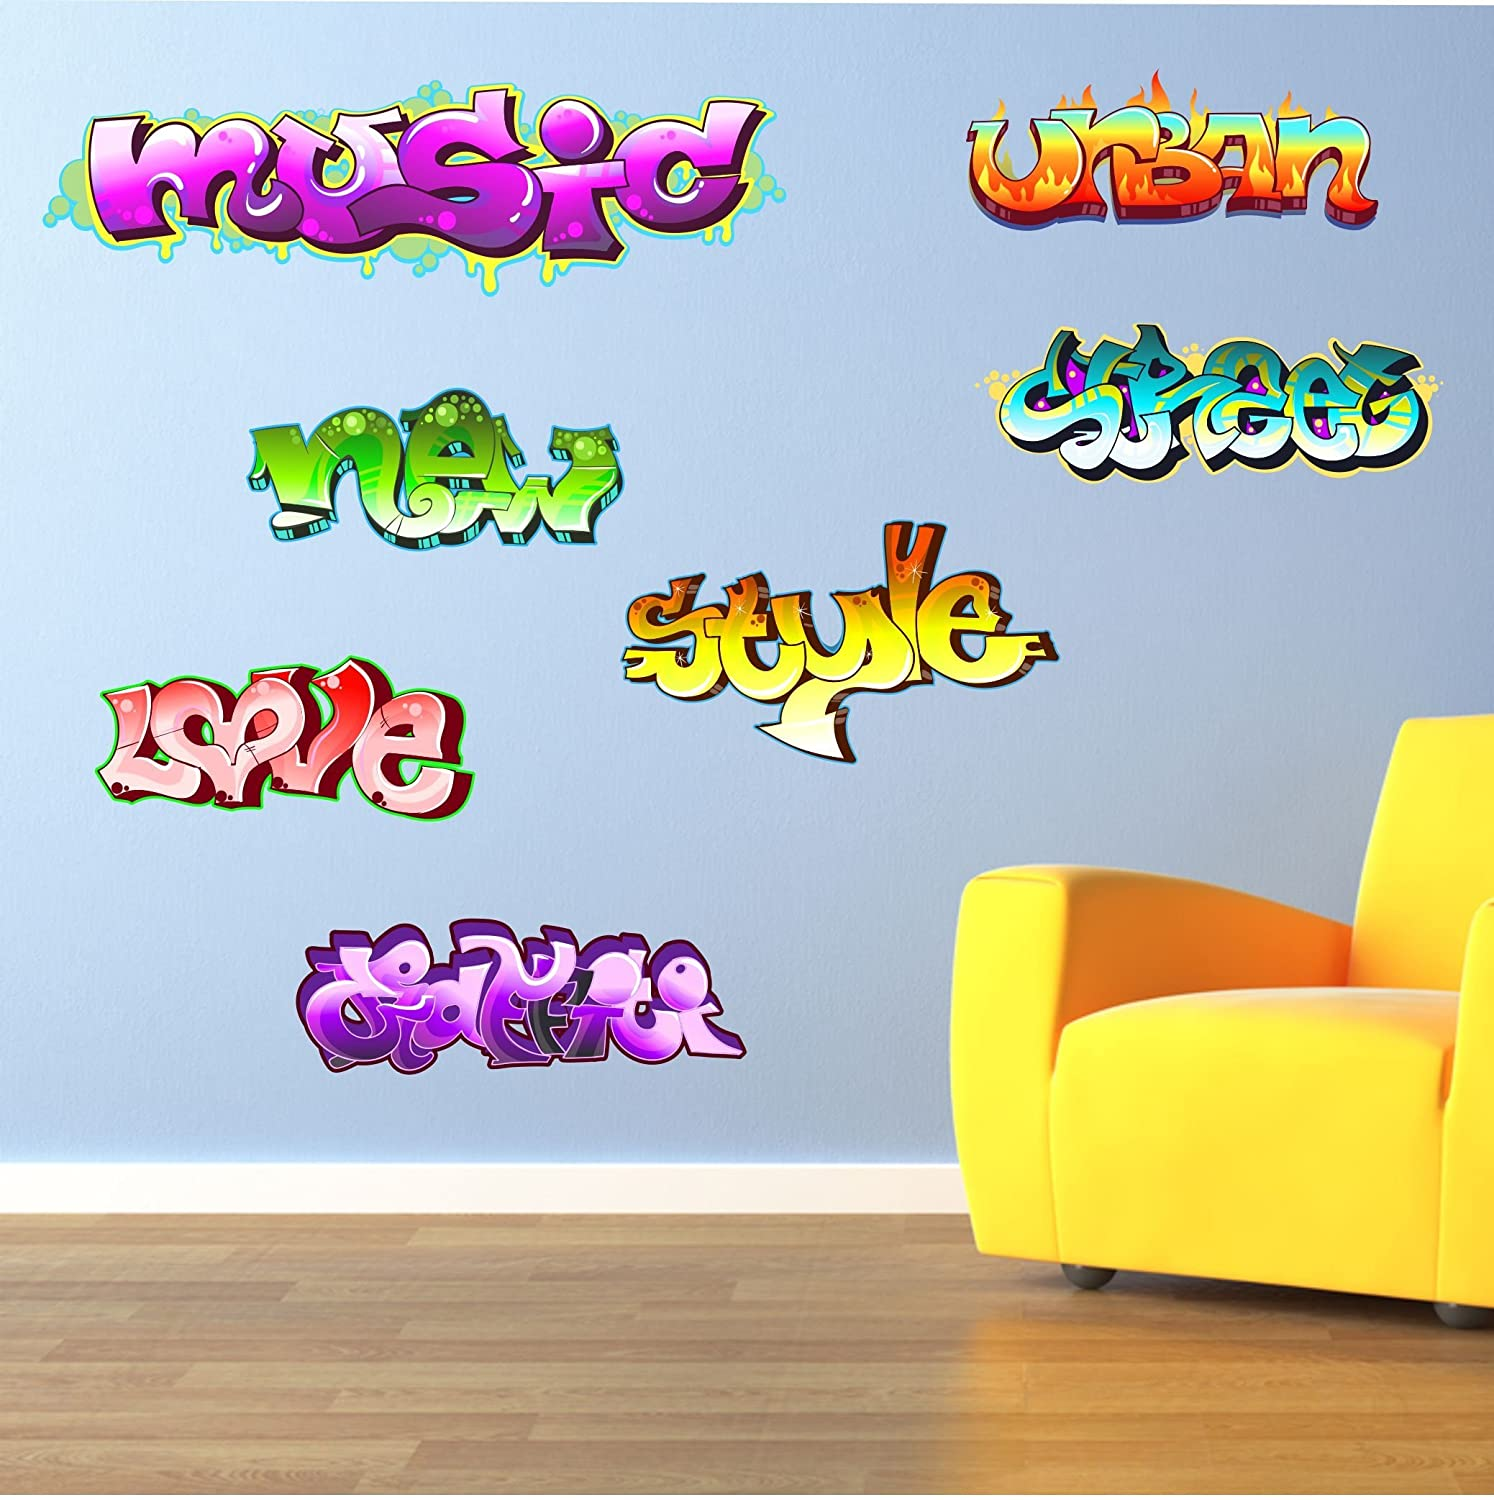 Graffiti wall sticker images home wall decoration ideas graffiti words teenkidschildrens wall art sticker each word graffiti words teenkidschildrens wall art sticker each word amipublicfo Gallery